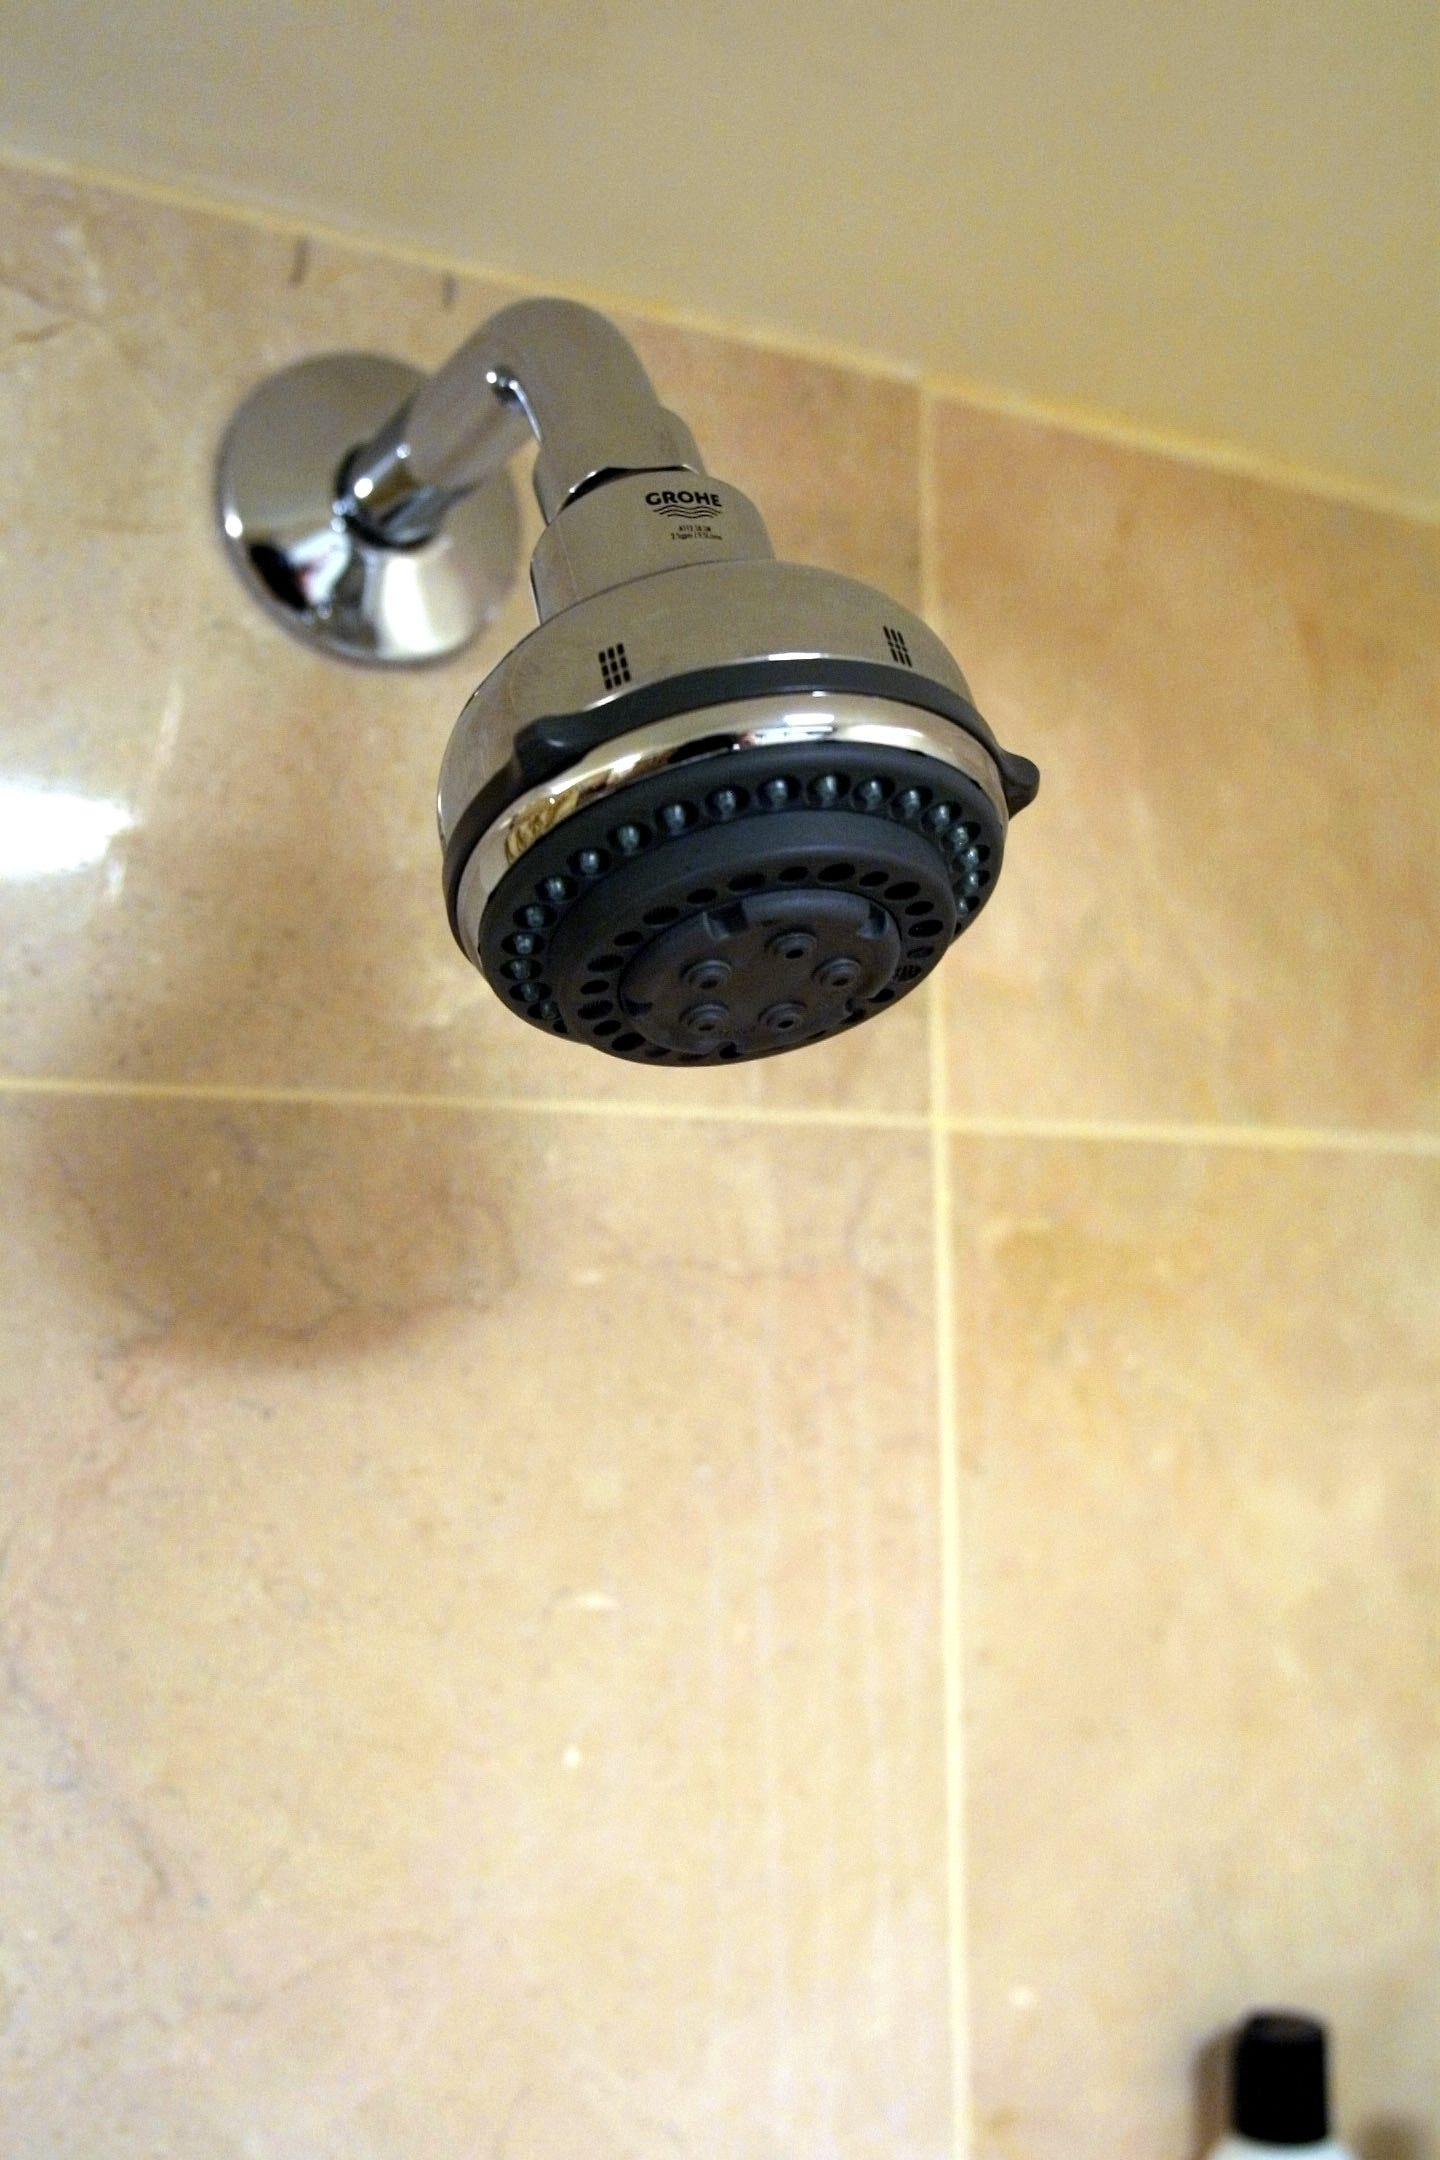 Videos peeing in shower and sinks